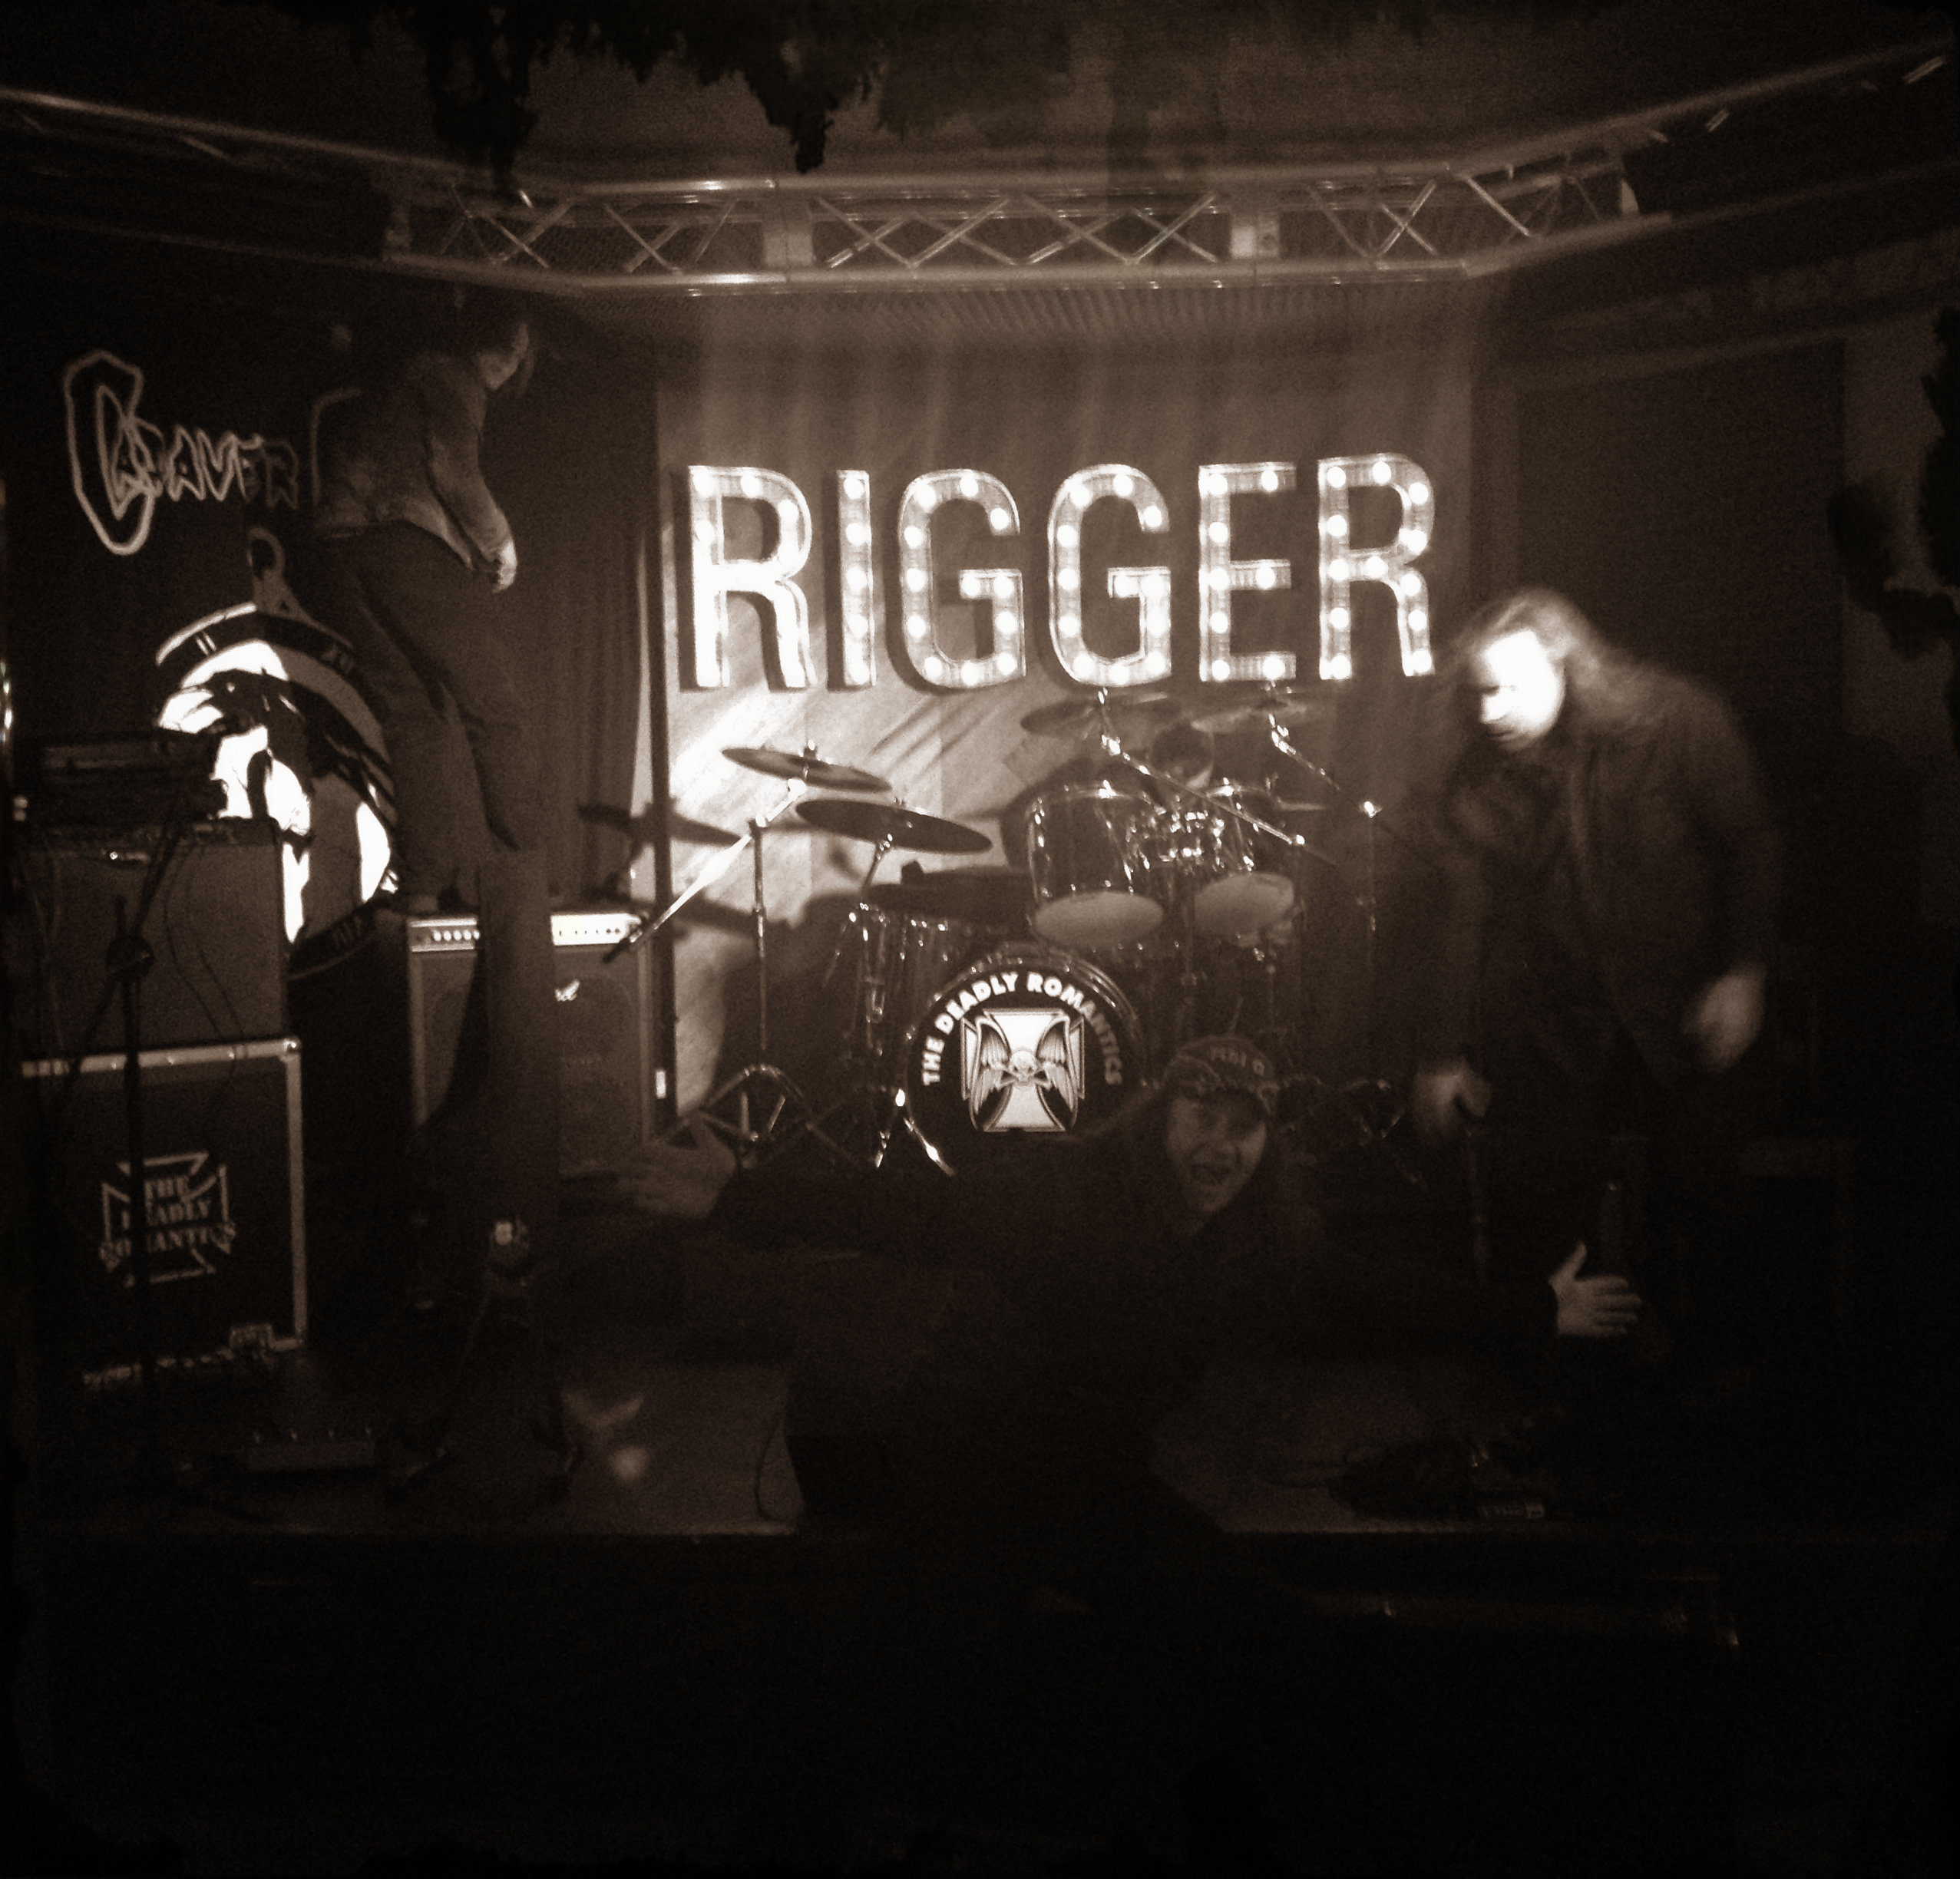 CC - The Rigger, Stoke 10.11.13